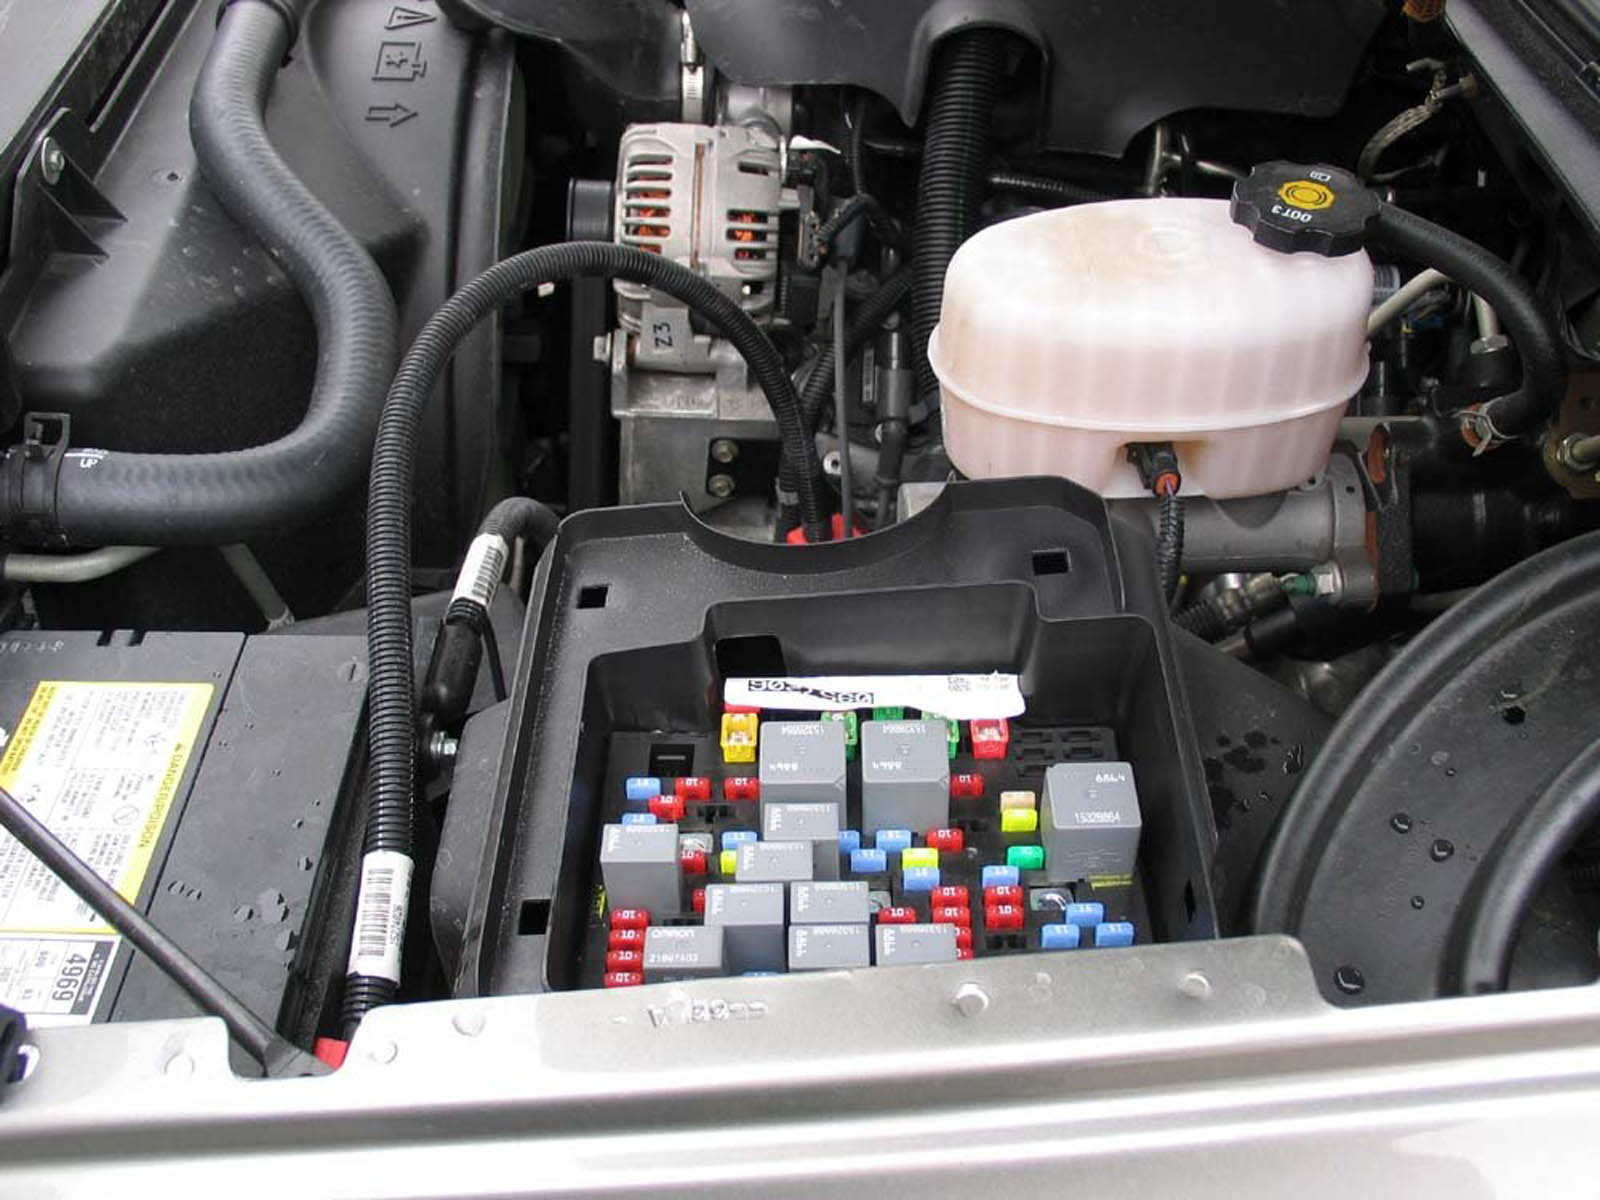 MMMay 27 Fuse Box 04 69845 chevrolet silverado gmt800 1999 2006 fuse box diagram chevroletforum fuse box 2003 chevy silverado at soozxer.org